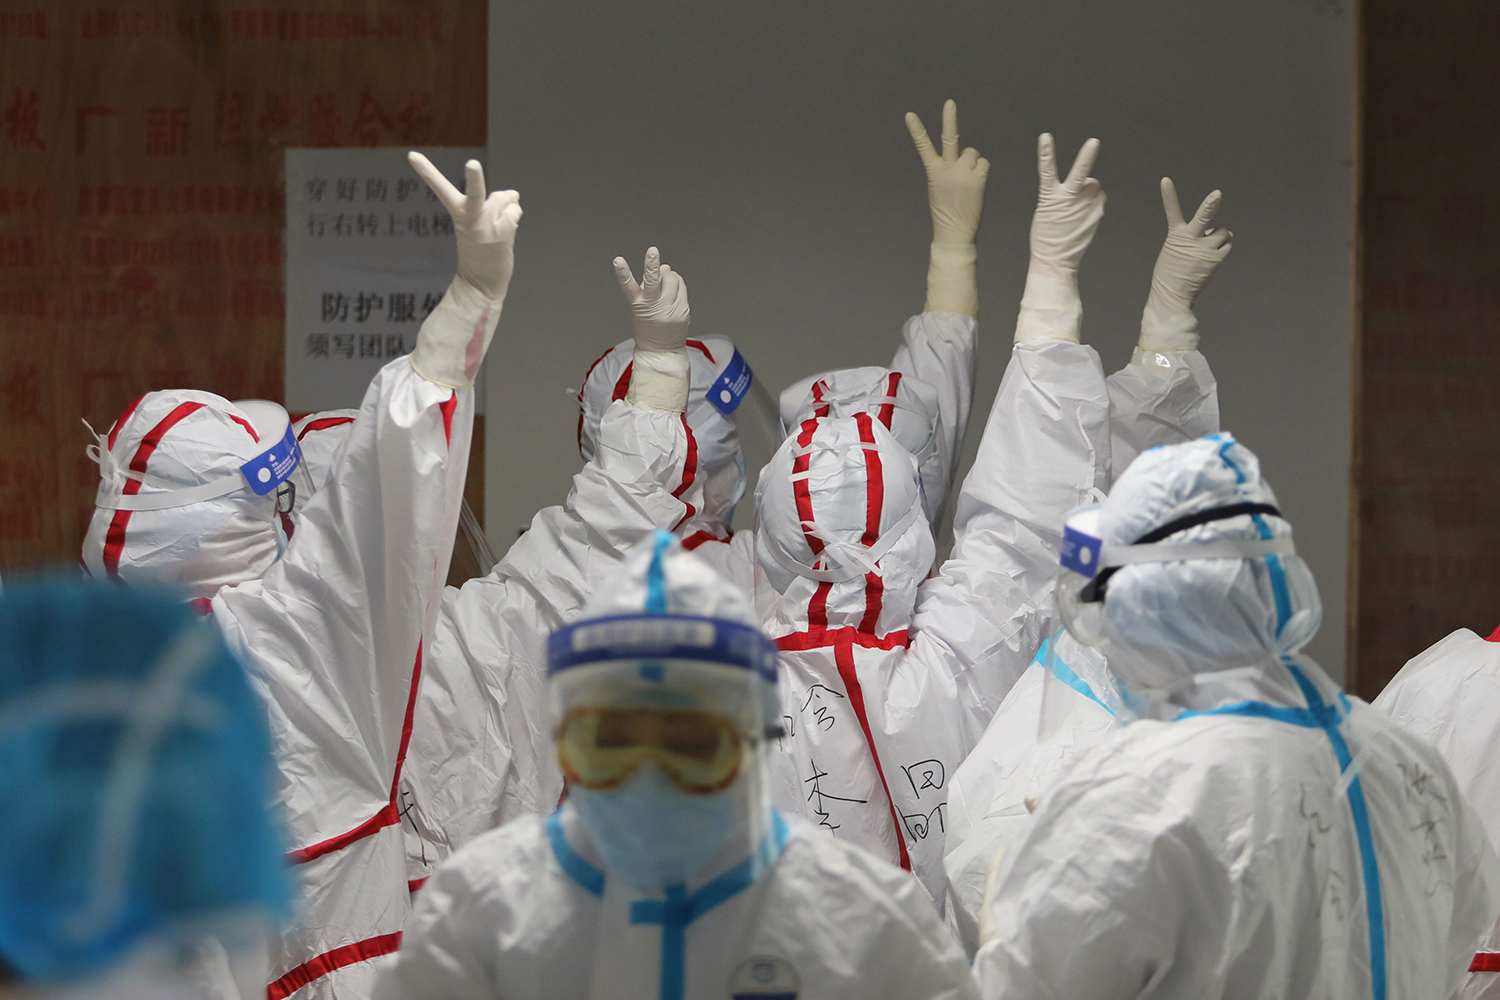 Medical staff cheer themselves up before going into an intesive care ward for COVID-19 patients at the Red Cross Hospital in Wuhan on March 16, 2020.